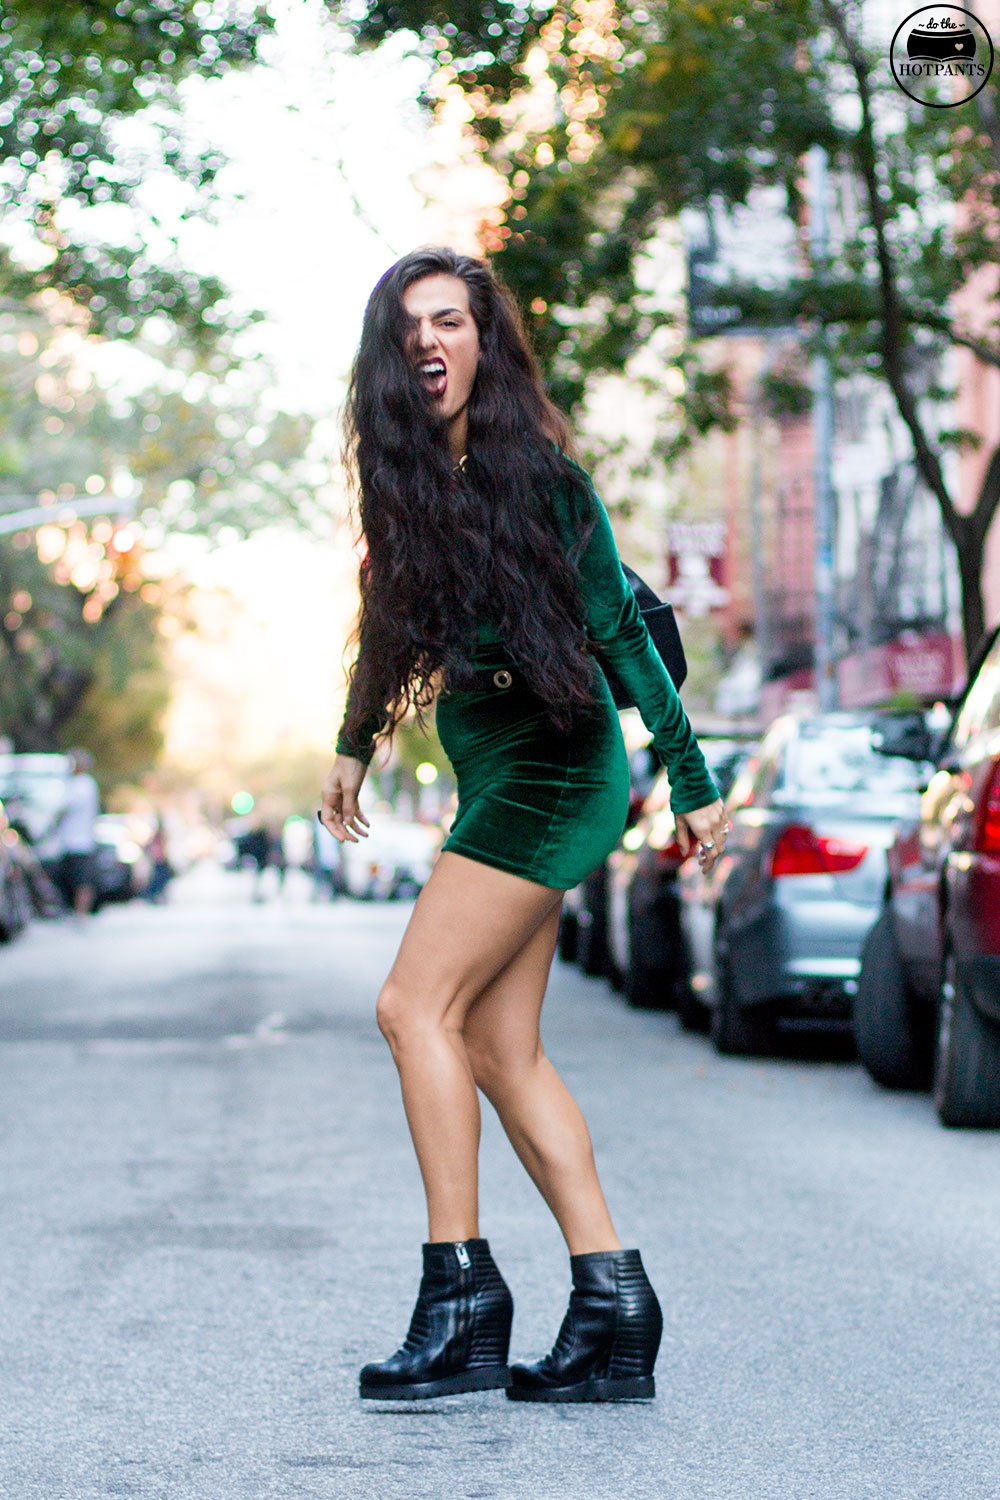 Do The Hotpants Dana Suchow Green Velvet Bodycon Dress Minidress Curvy Woman Long Hairstyle Wavy Hair IMG_3574